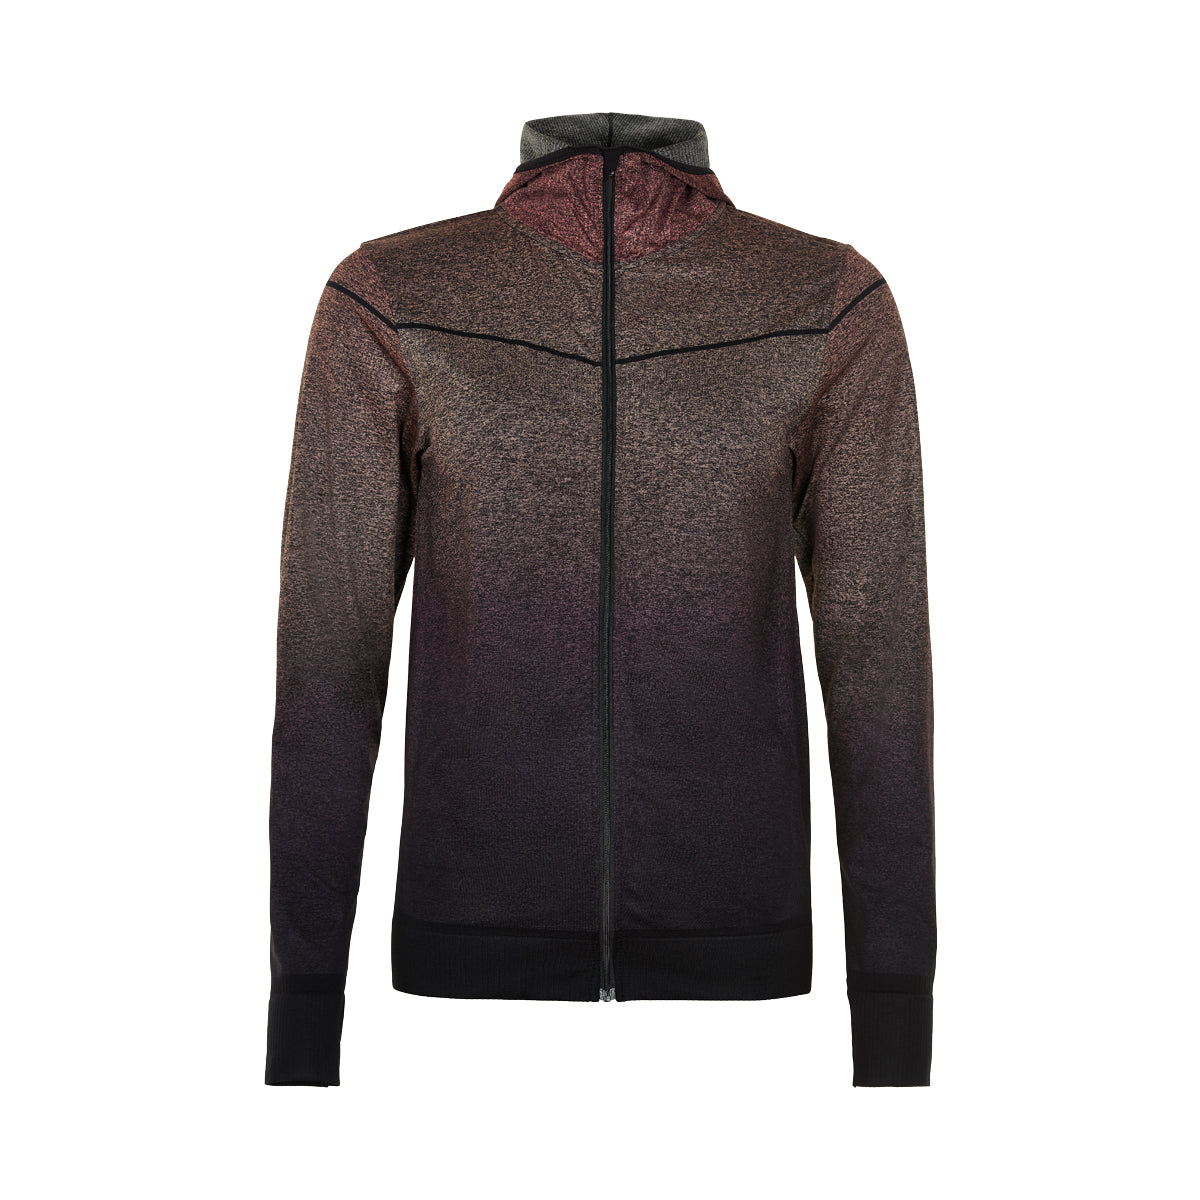 PURE Dip dye jacket w-THE NEW PURE-THE NEW PURE